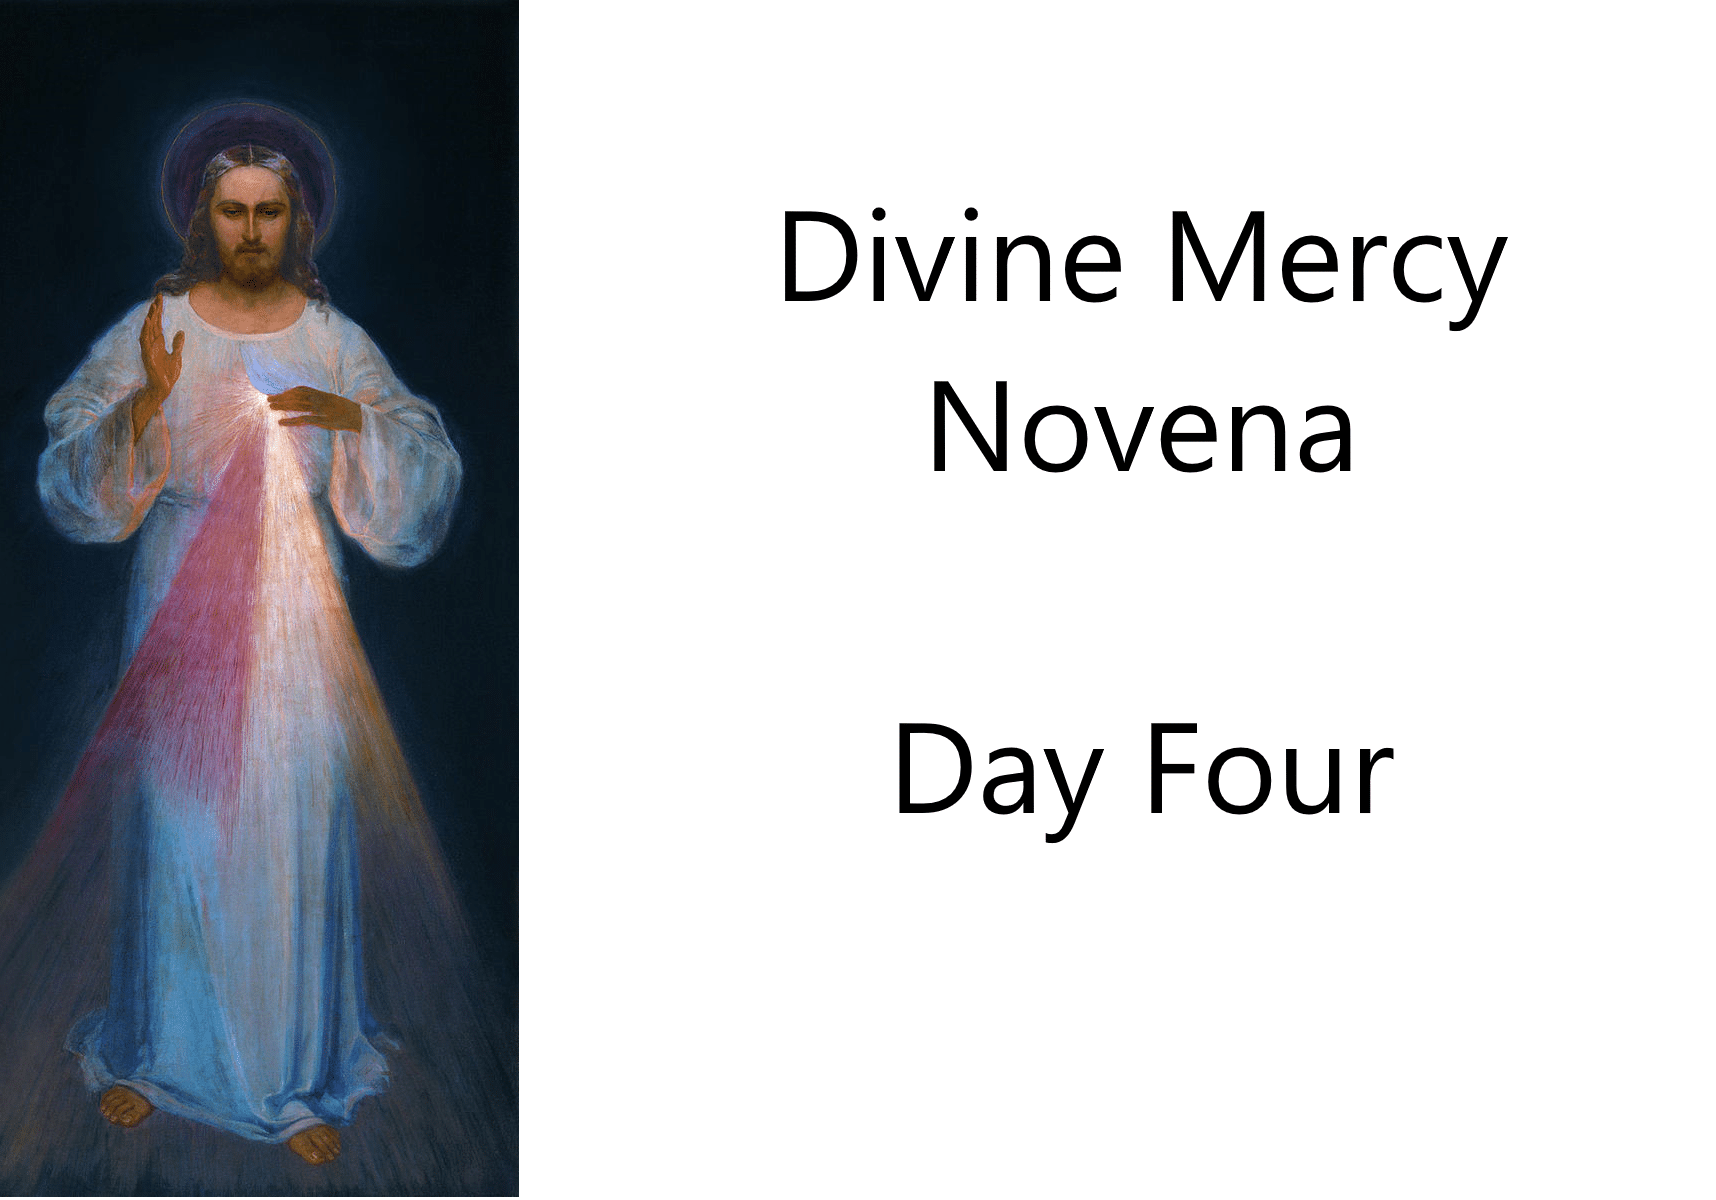 Divine Mercy Novena Day Four